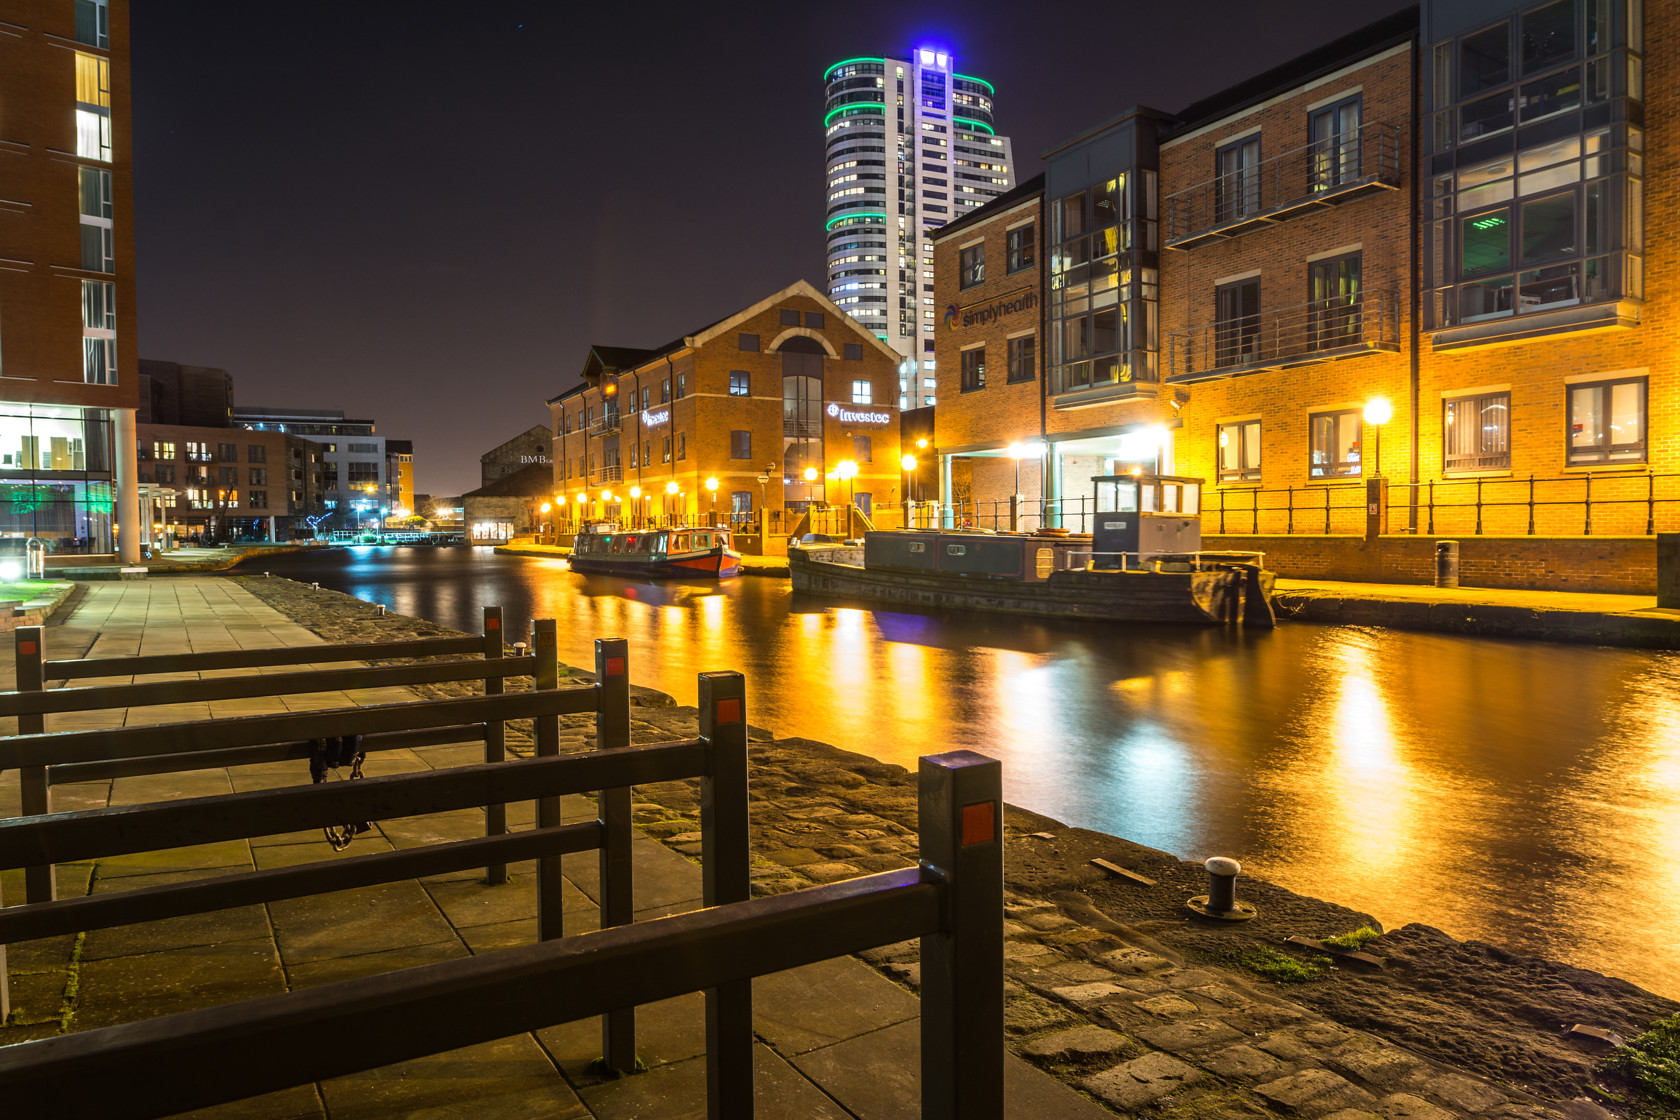 granary wharf, leeds (ref can 3) 